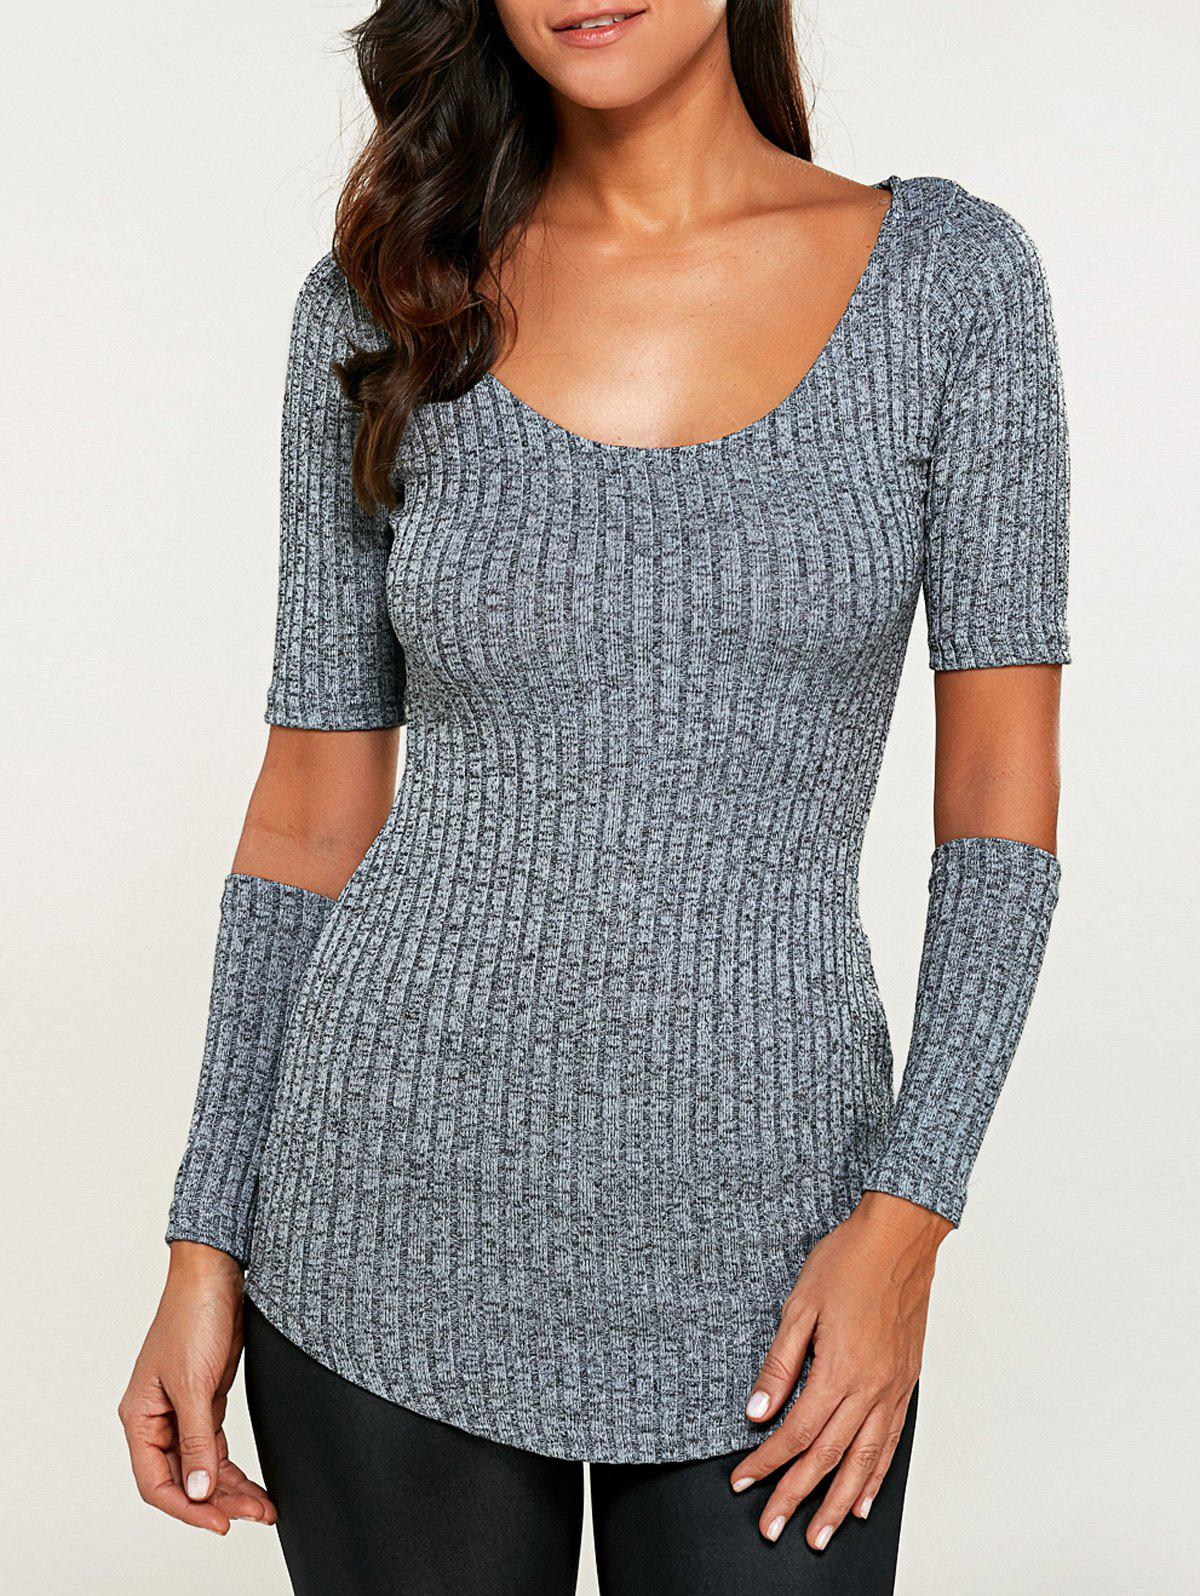 Ribbed Cut Out Heathered Knitwear 196398303